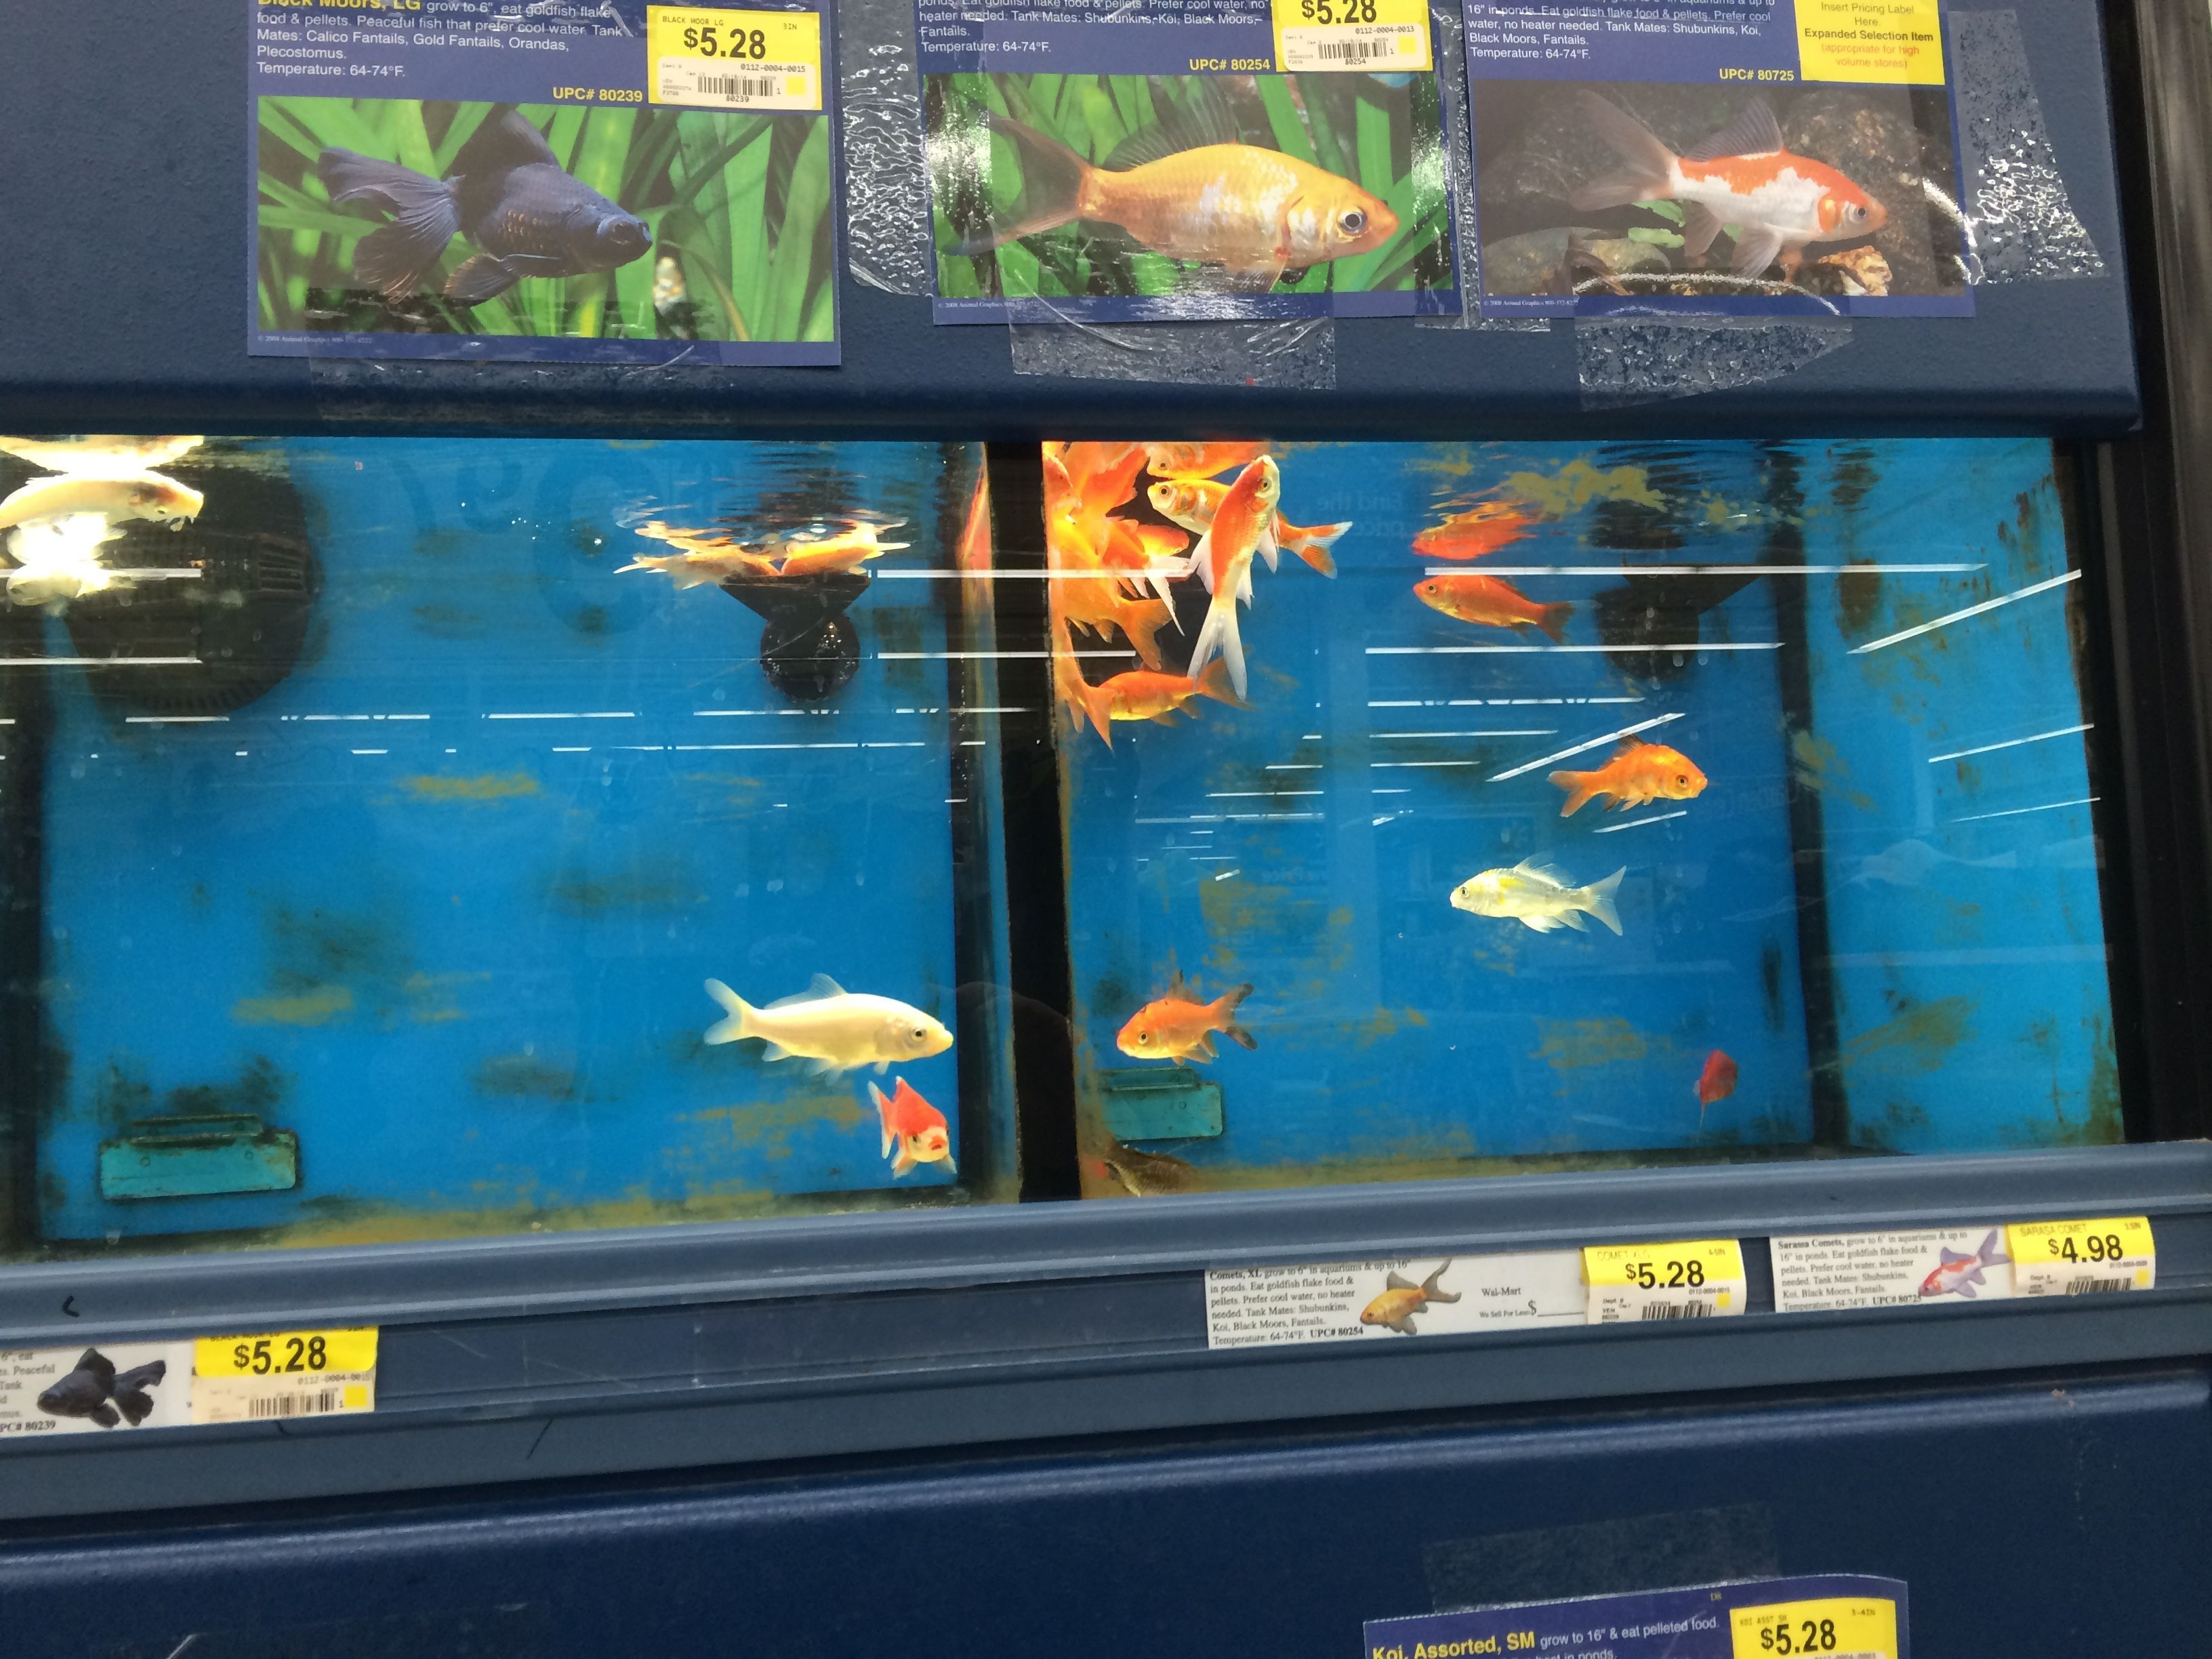 dead fish float at top of ravenna ohio walmart goldfish tanks dead fish float at top of ravenna ohio walmart goldfish tanks more at